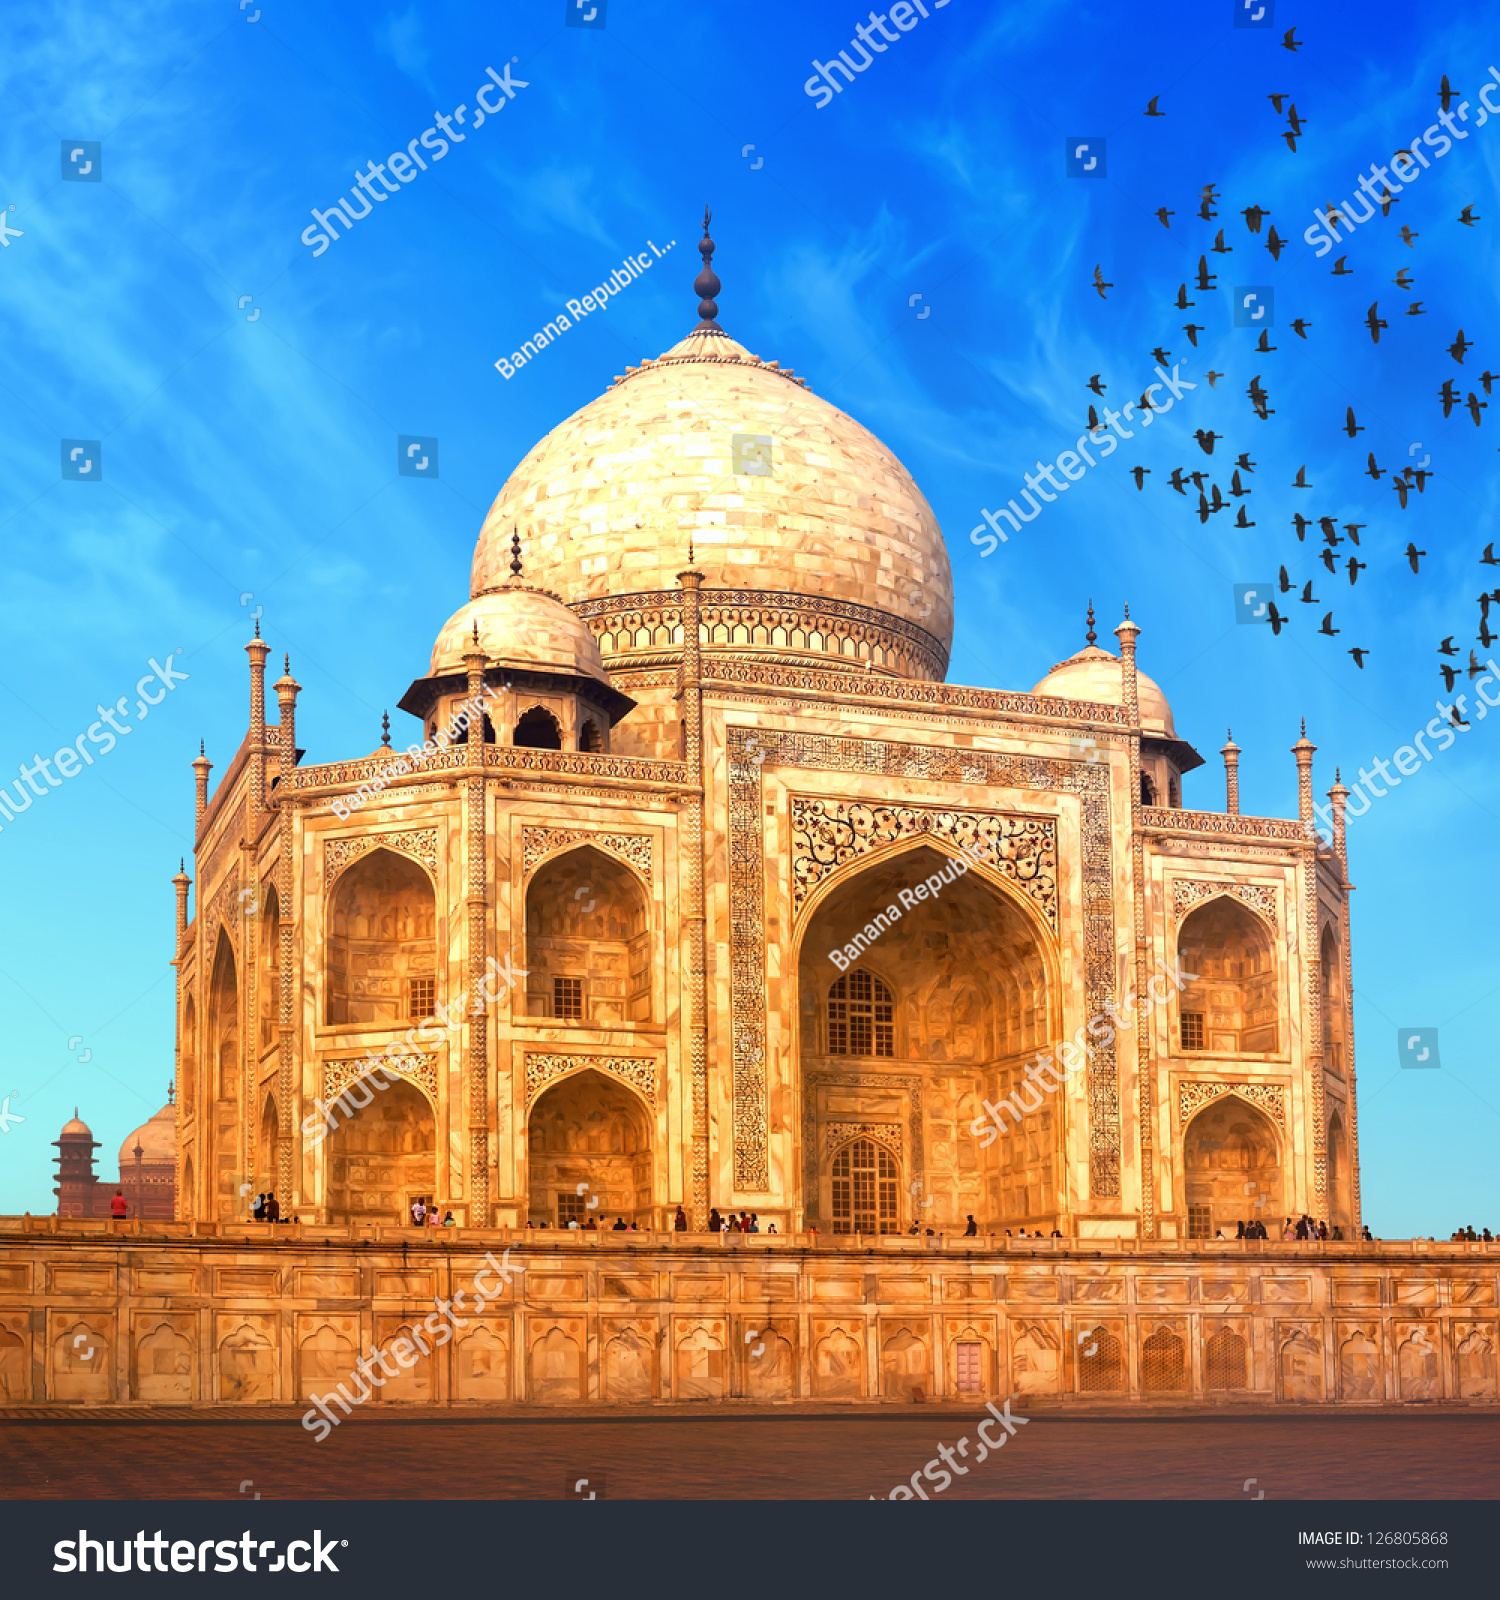 information taj mahal hindi Get facts, photos, and travel tips for the taj mahal, a world heritage site in india, from national geographic.